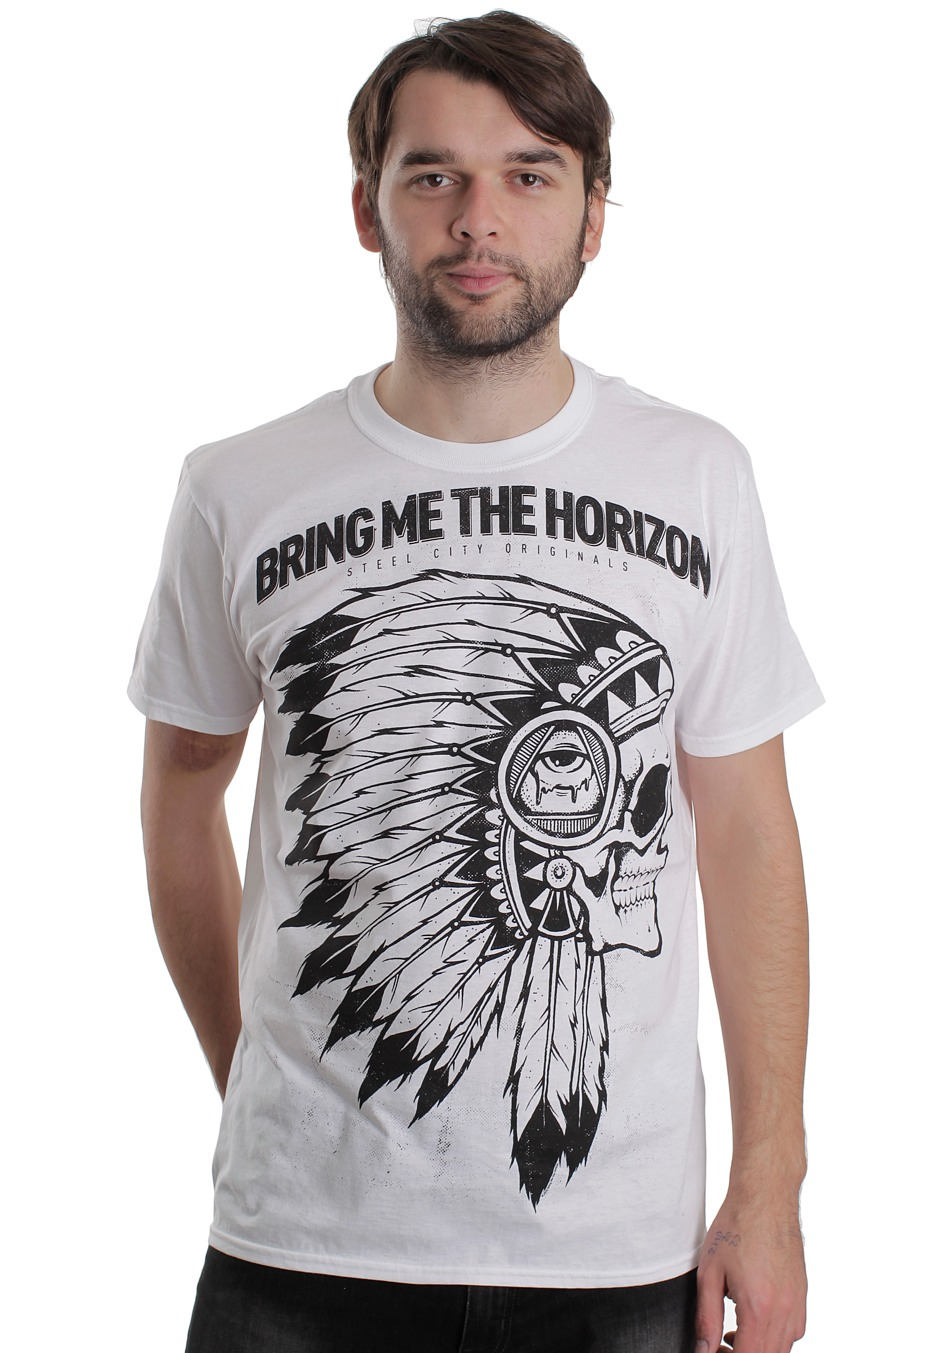 Bring Me The Horizon - Indian Skull White - T-Shirt - Official Merch Store - Impericon.com UK